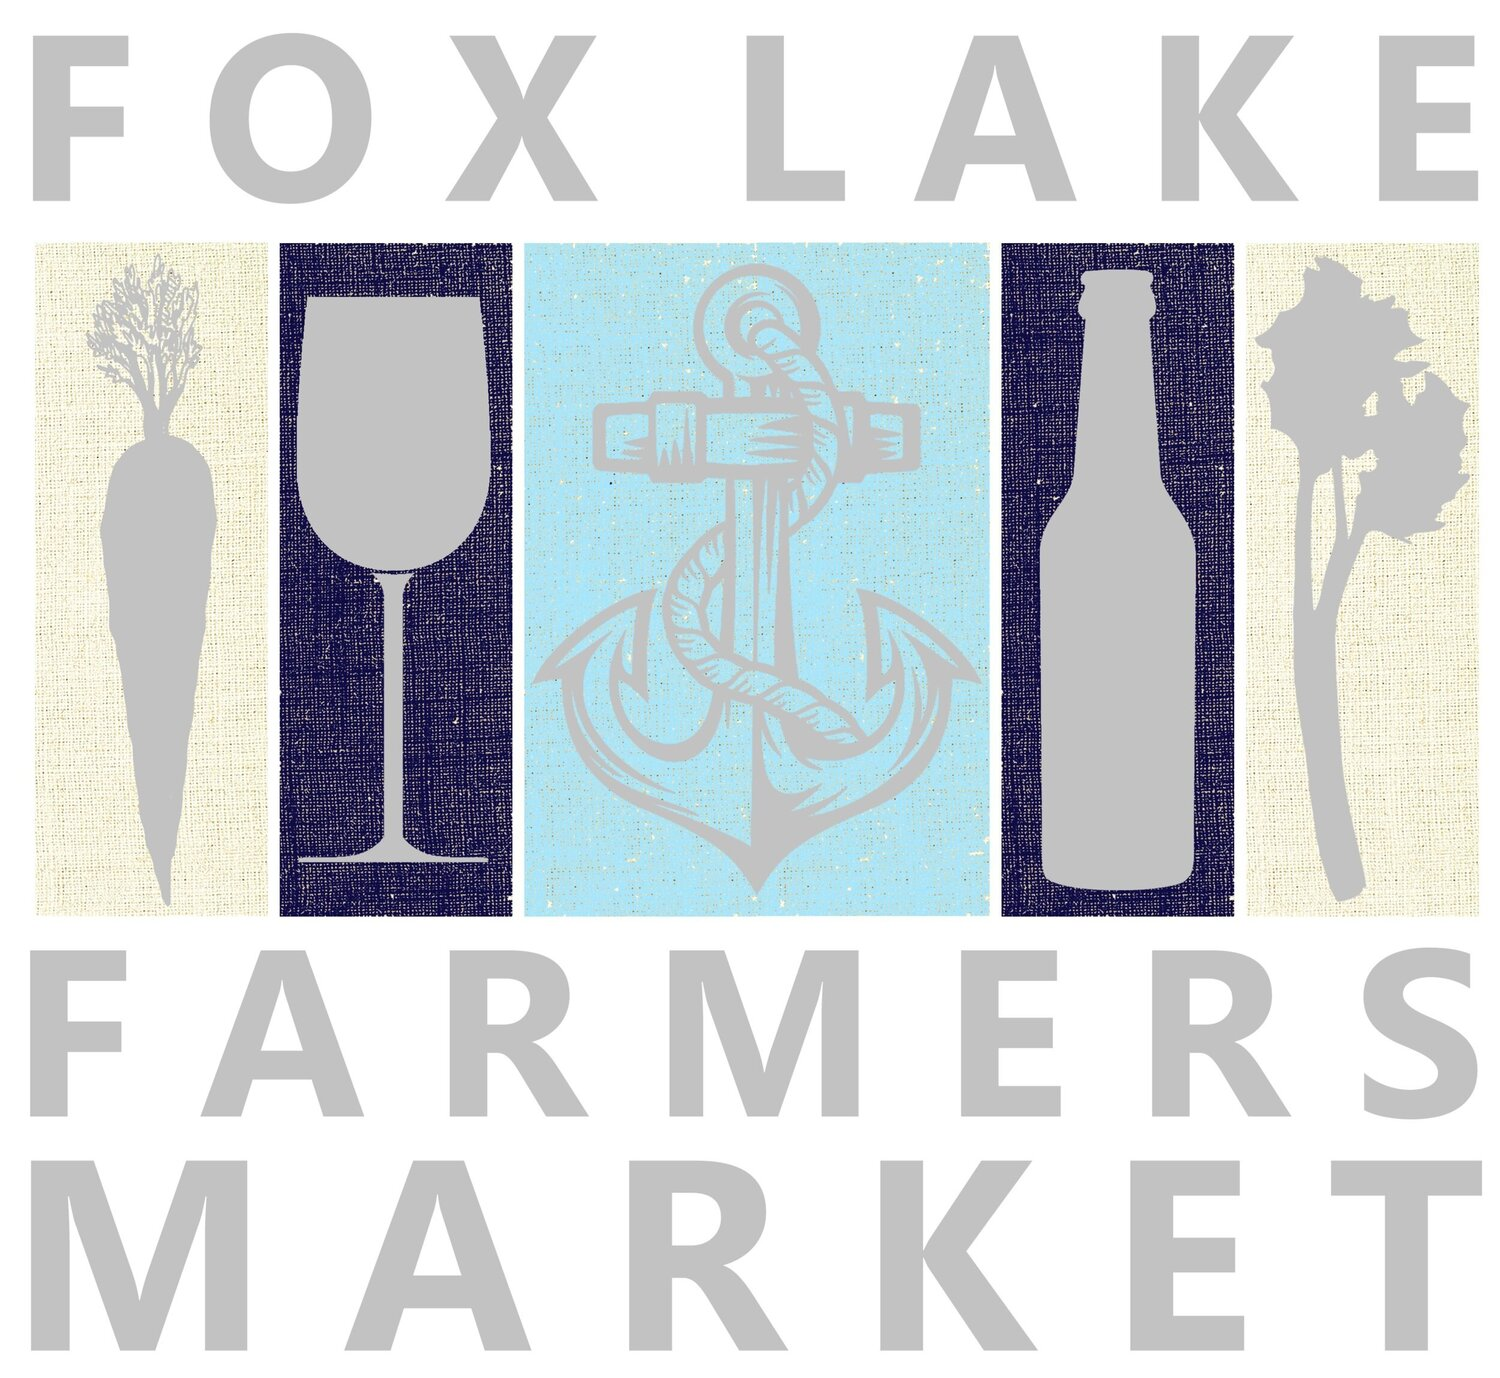 Fox Lake Farmers Market